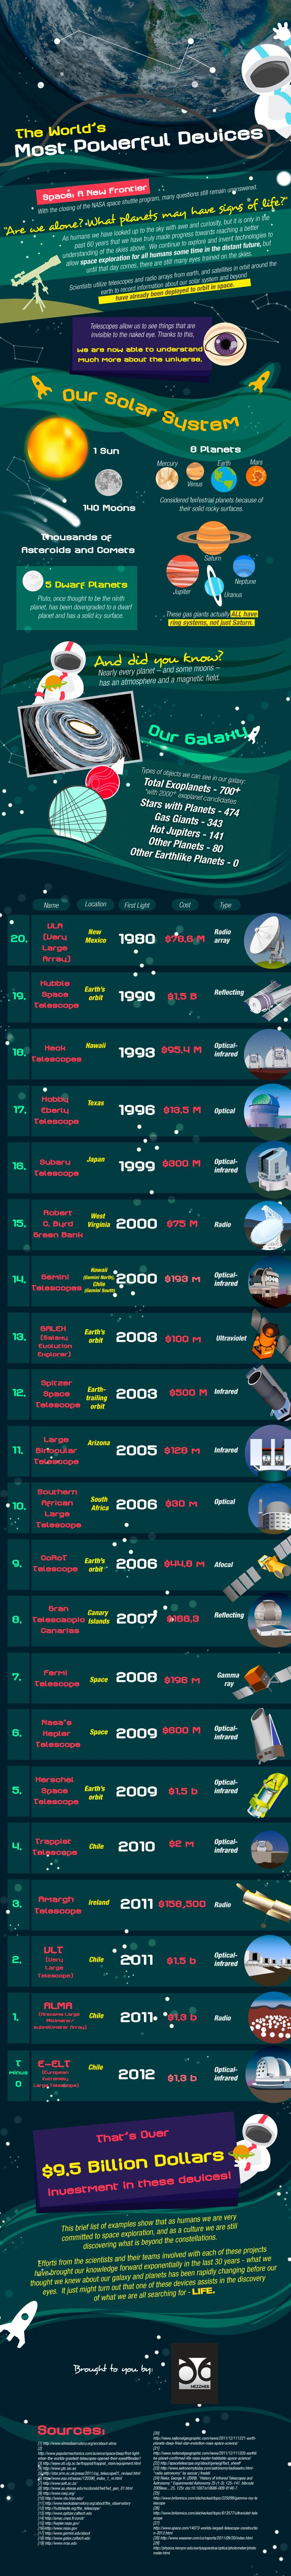 The world's most powerful telescopes: Infographic